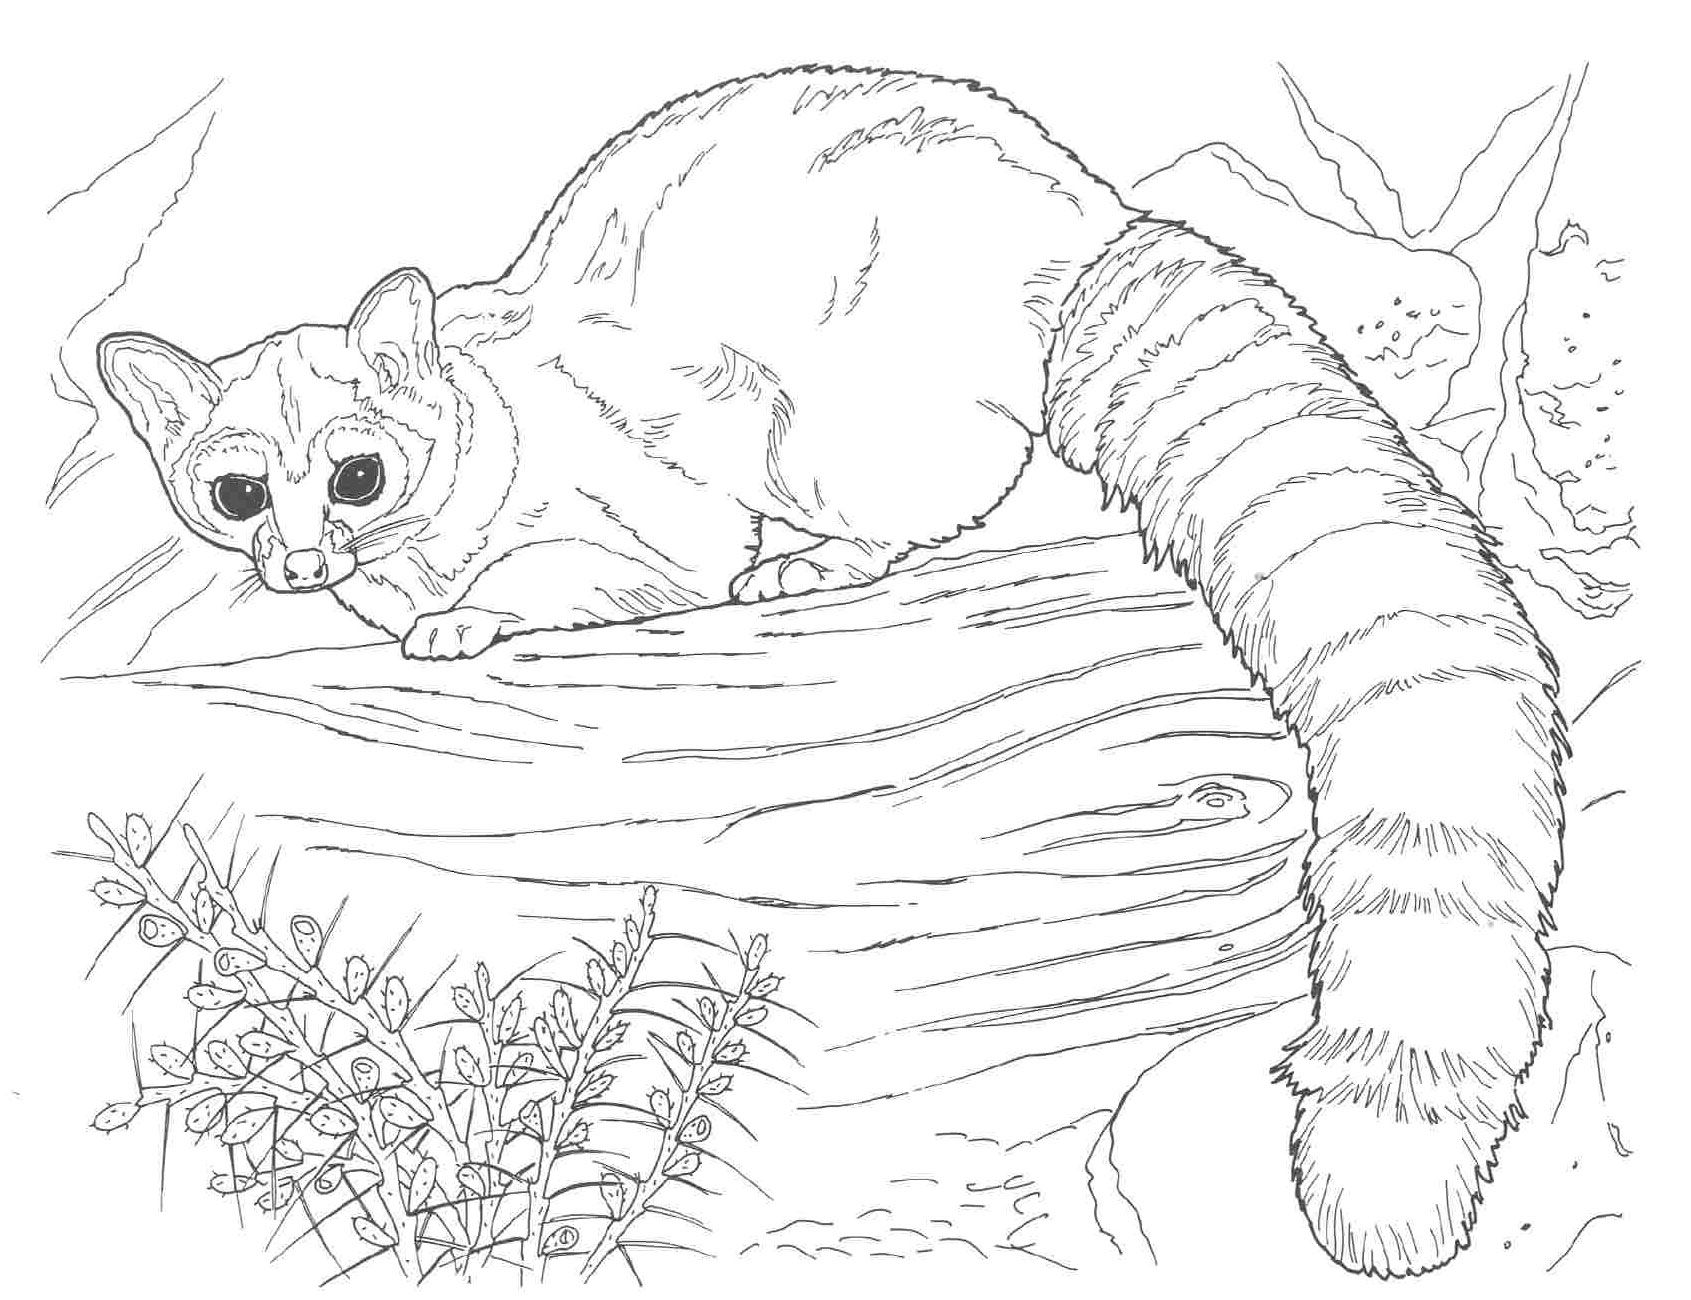 Coloring Pages Animals Realistic : Free printable raccoon coloring pages for kids